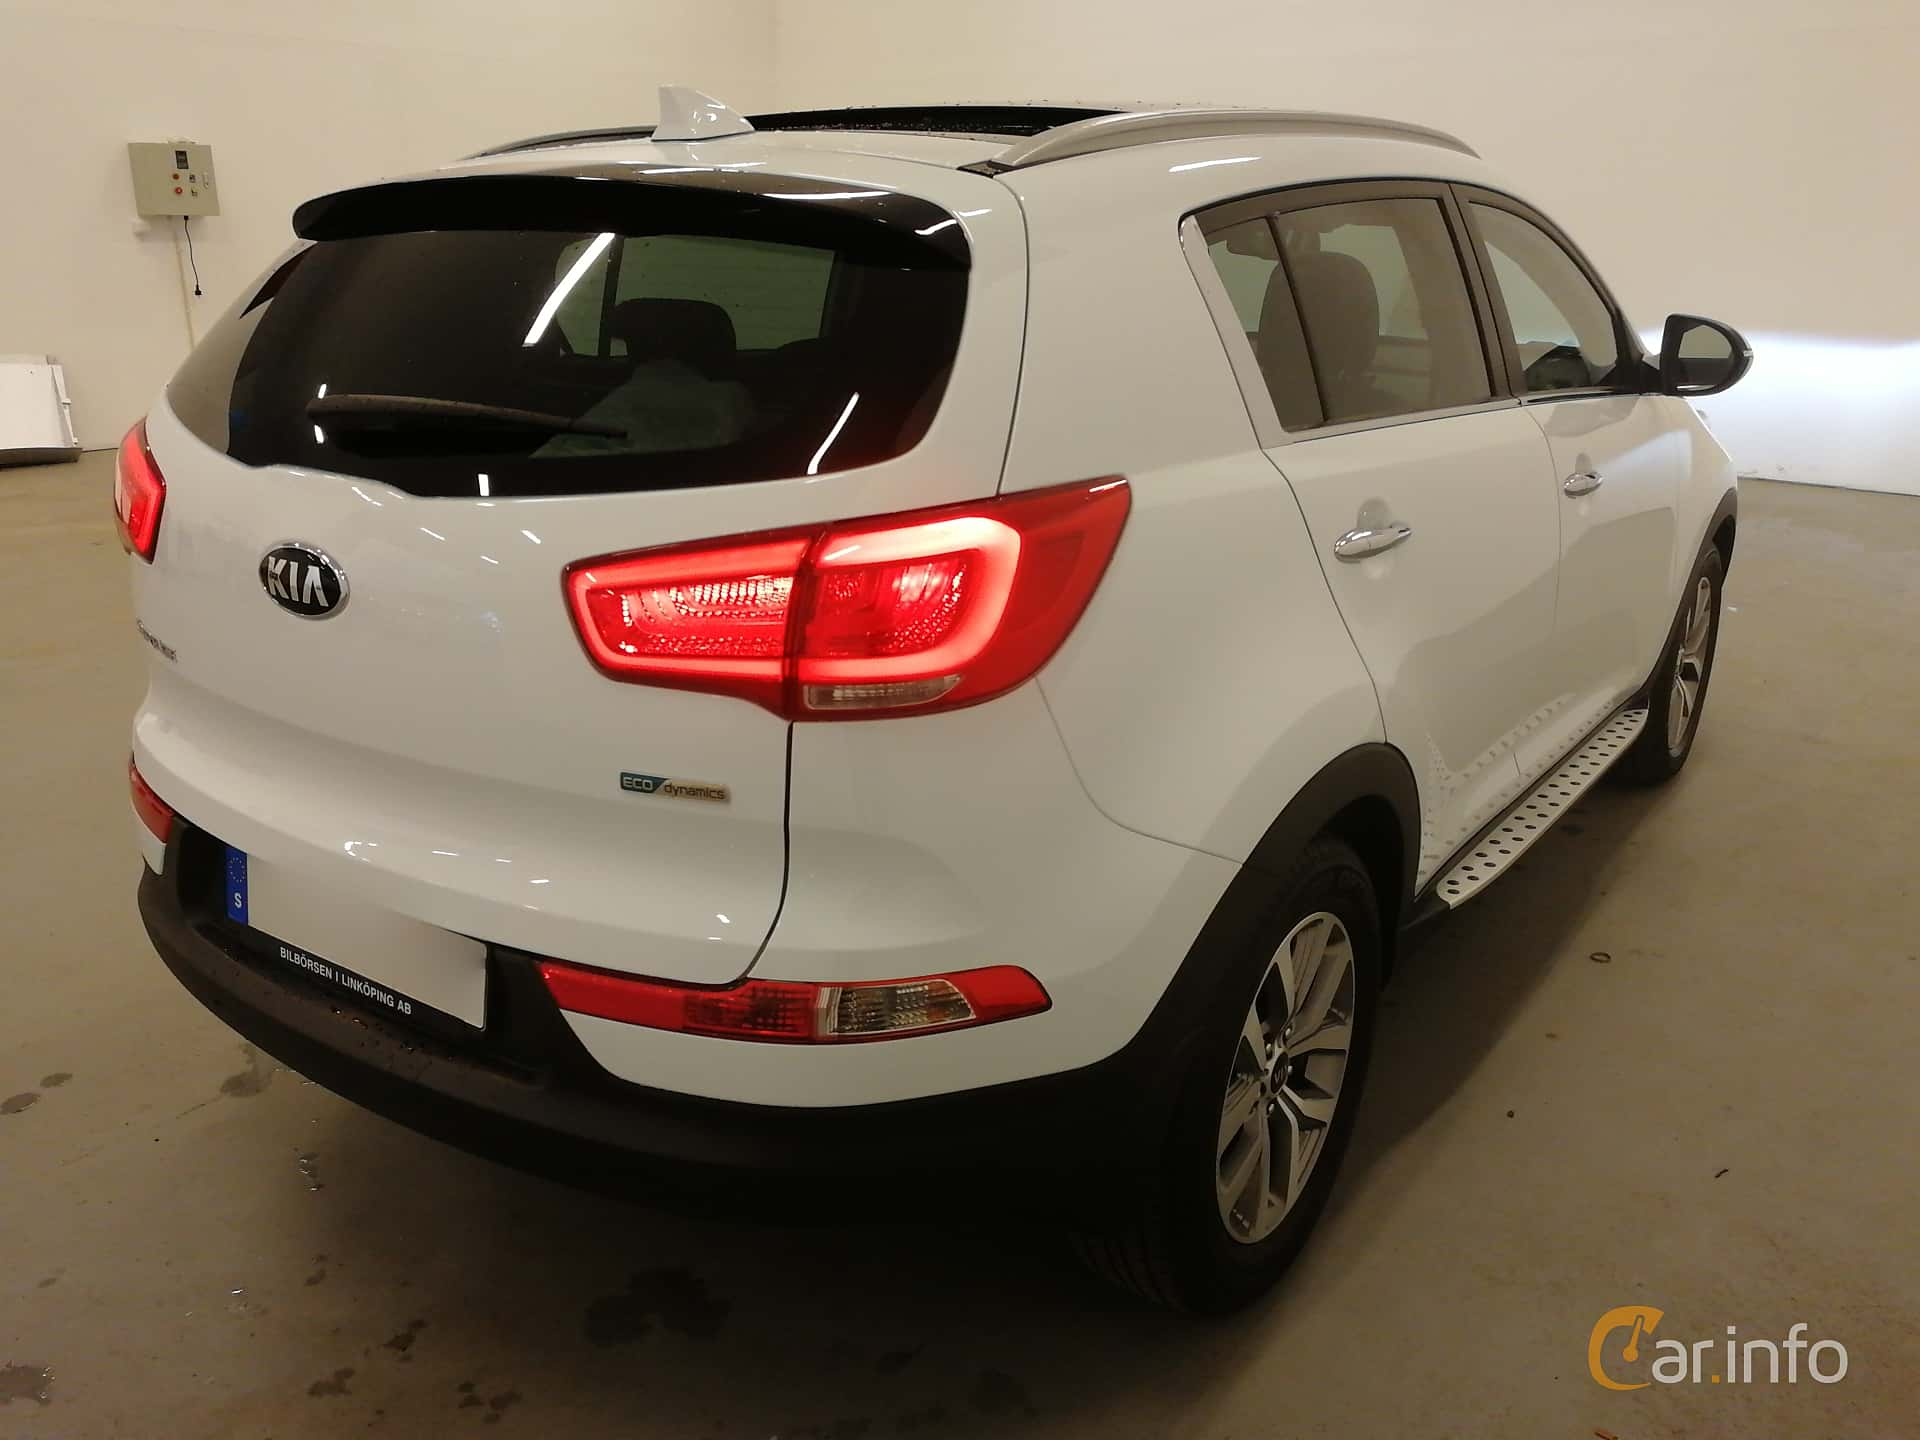 Kia Sportage 1.7 CRDi Manual, 115hp, 2015